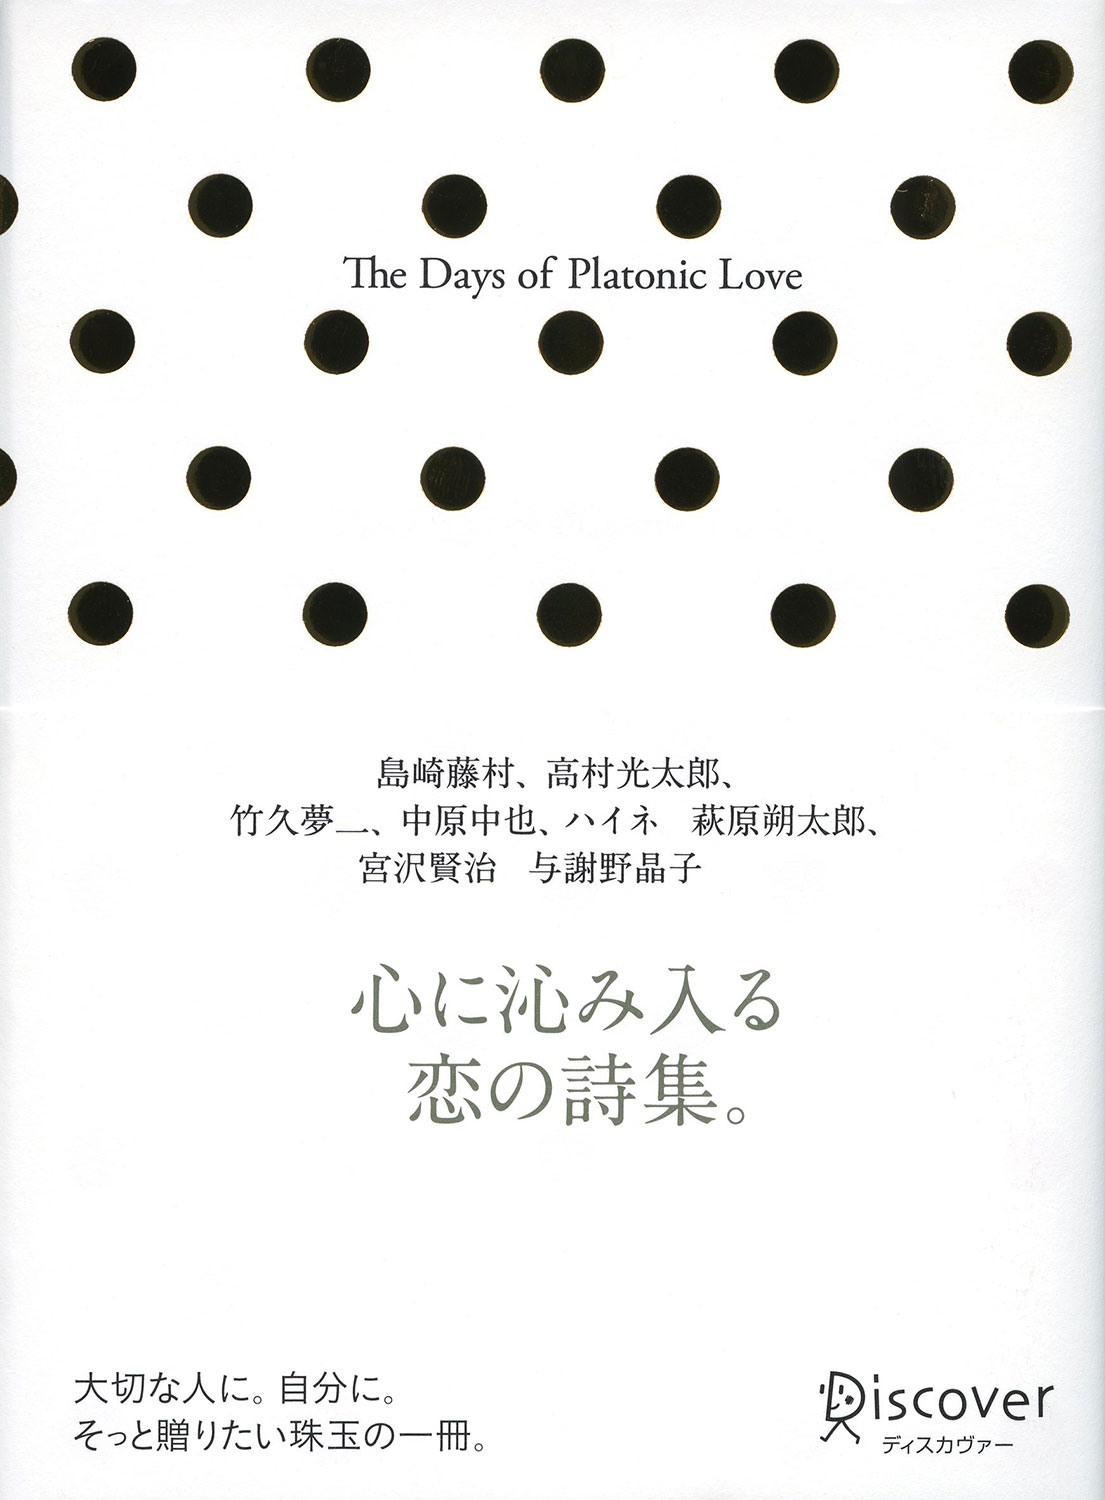 The Days of Platonic Love 恋の詩の本